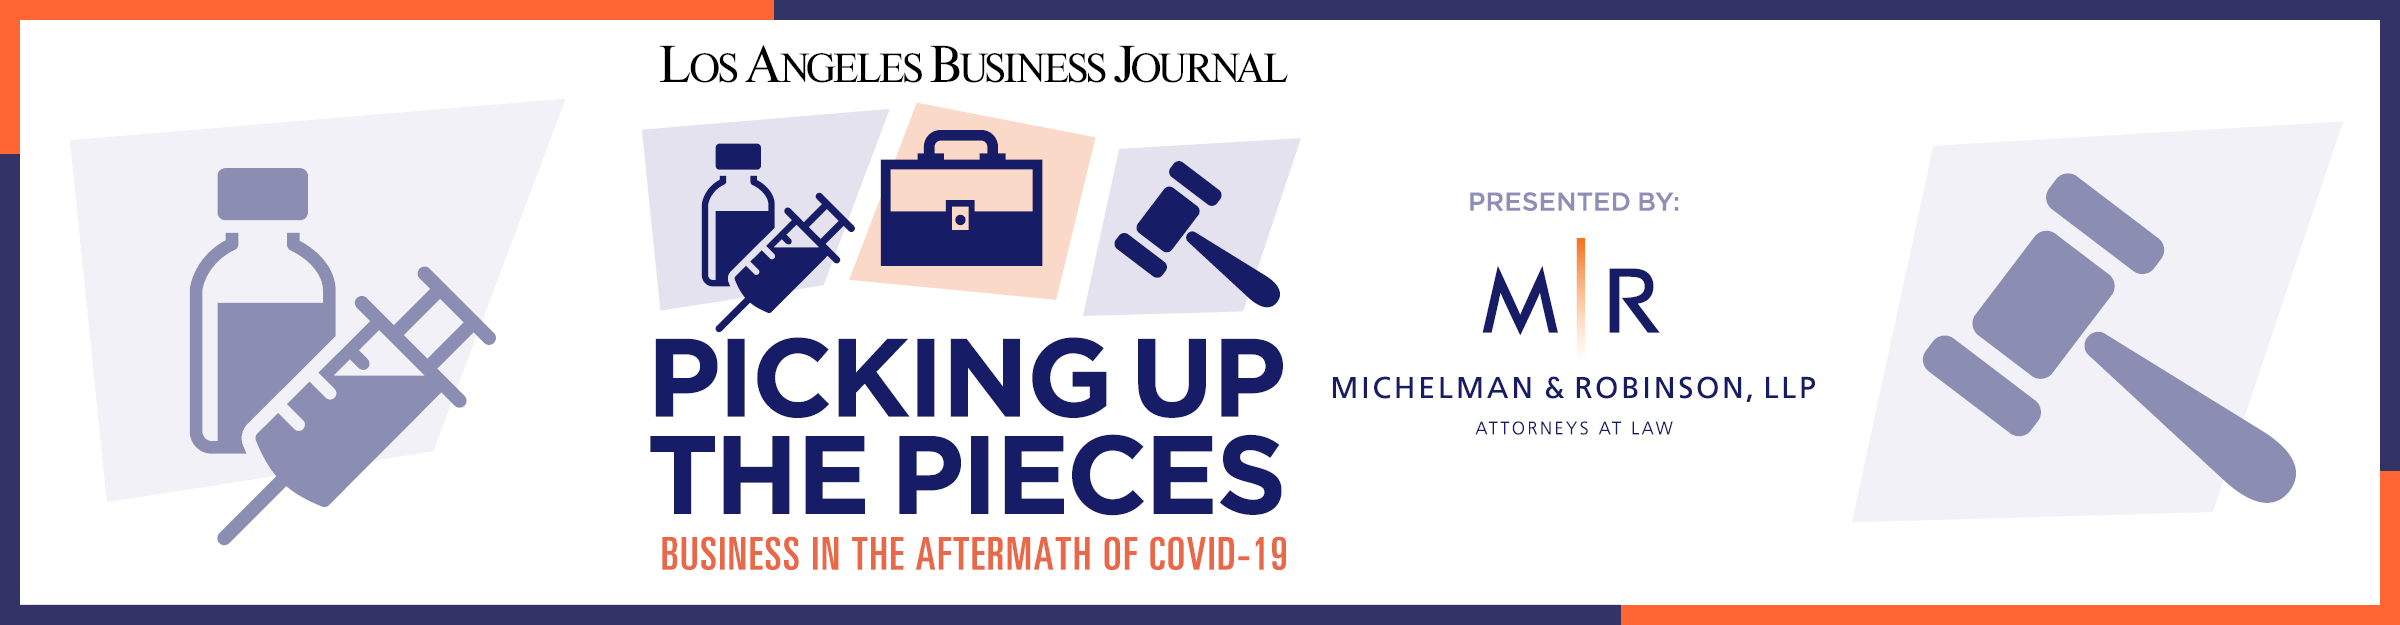 Los Angeles Business Journal Picking Up the Pieces: Business in the Aftermath of COVID-19 Event Banner